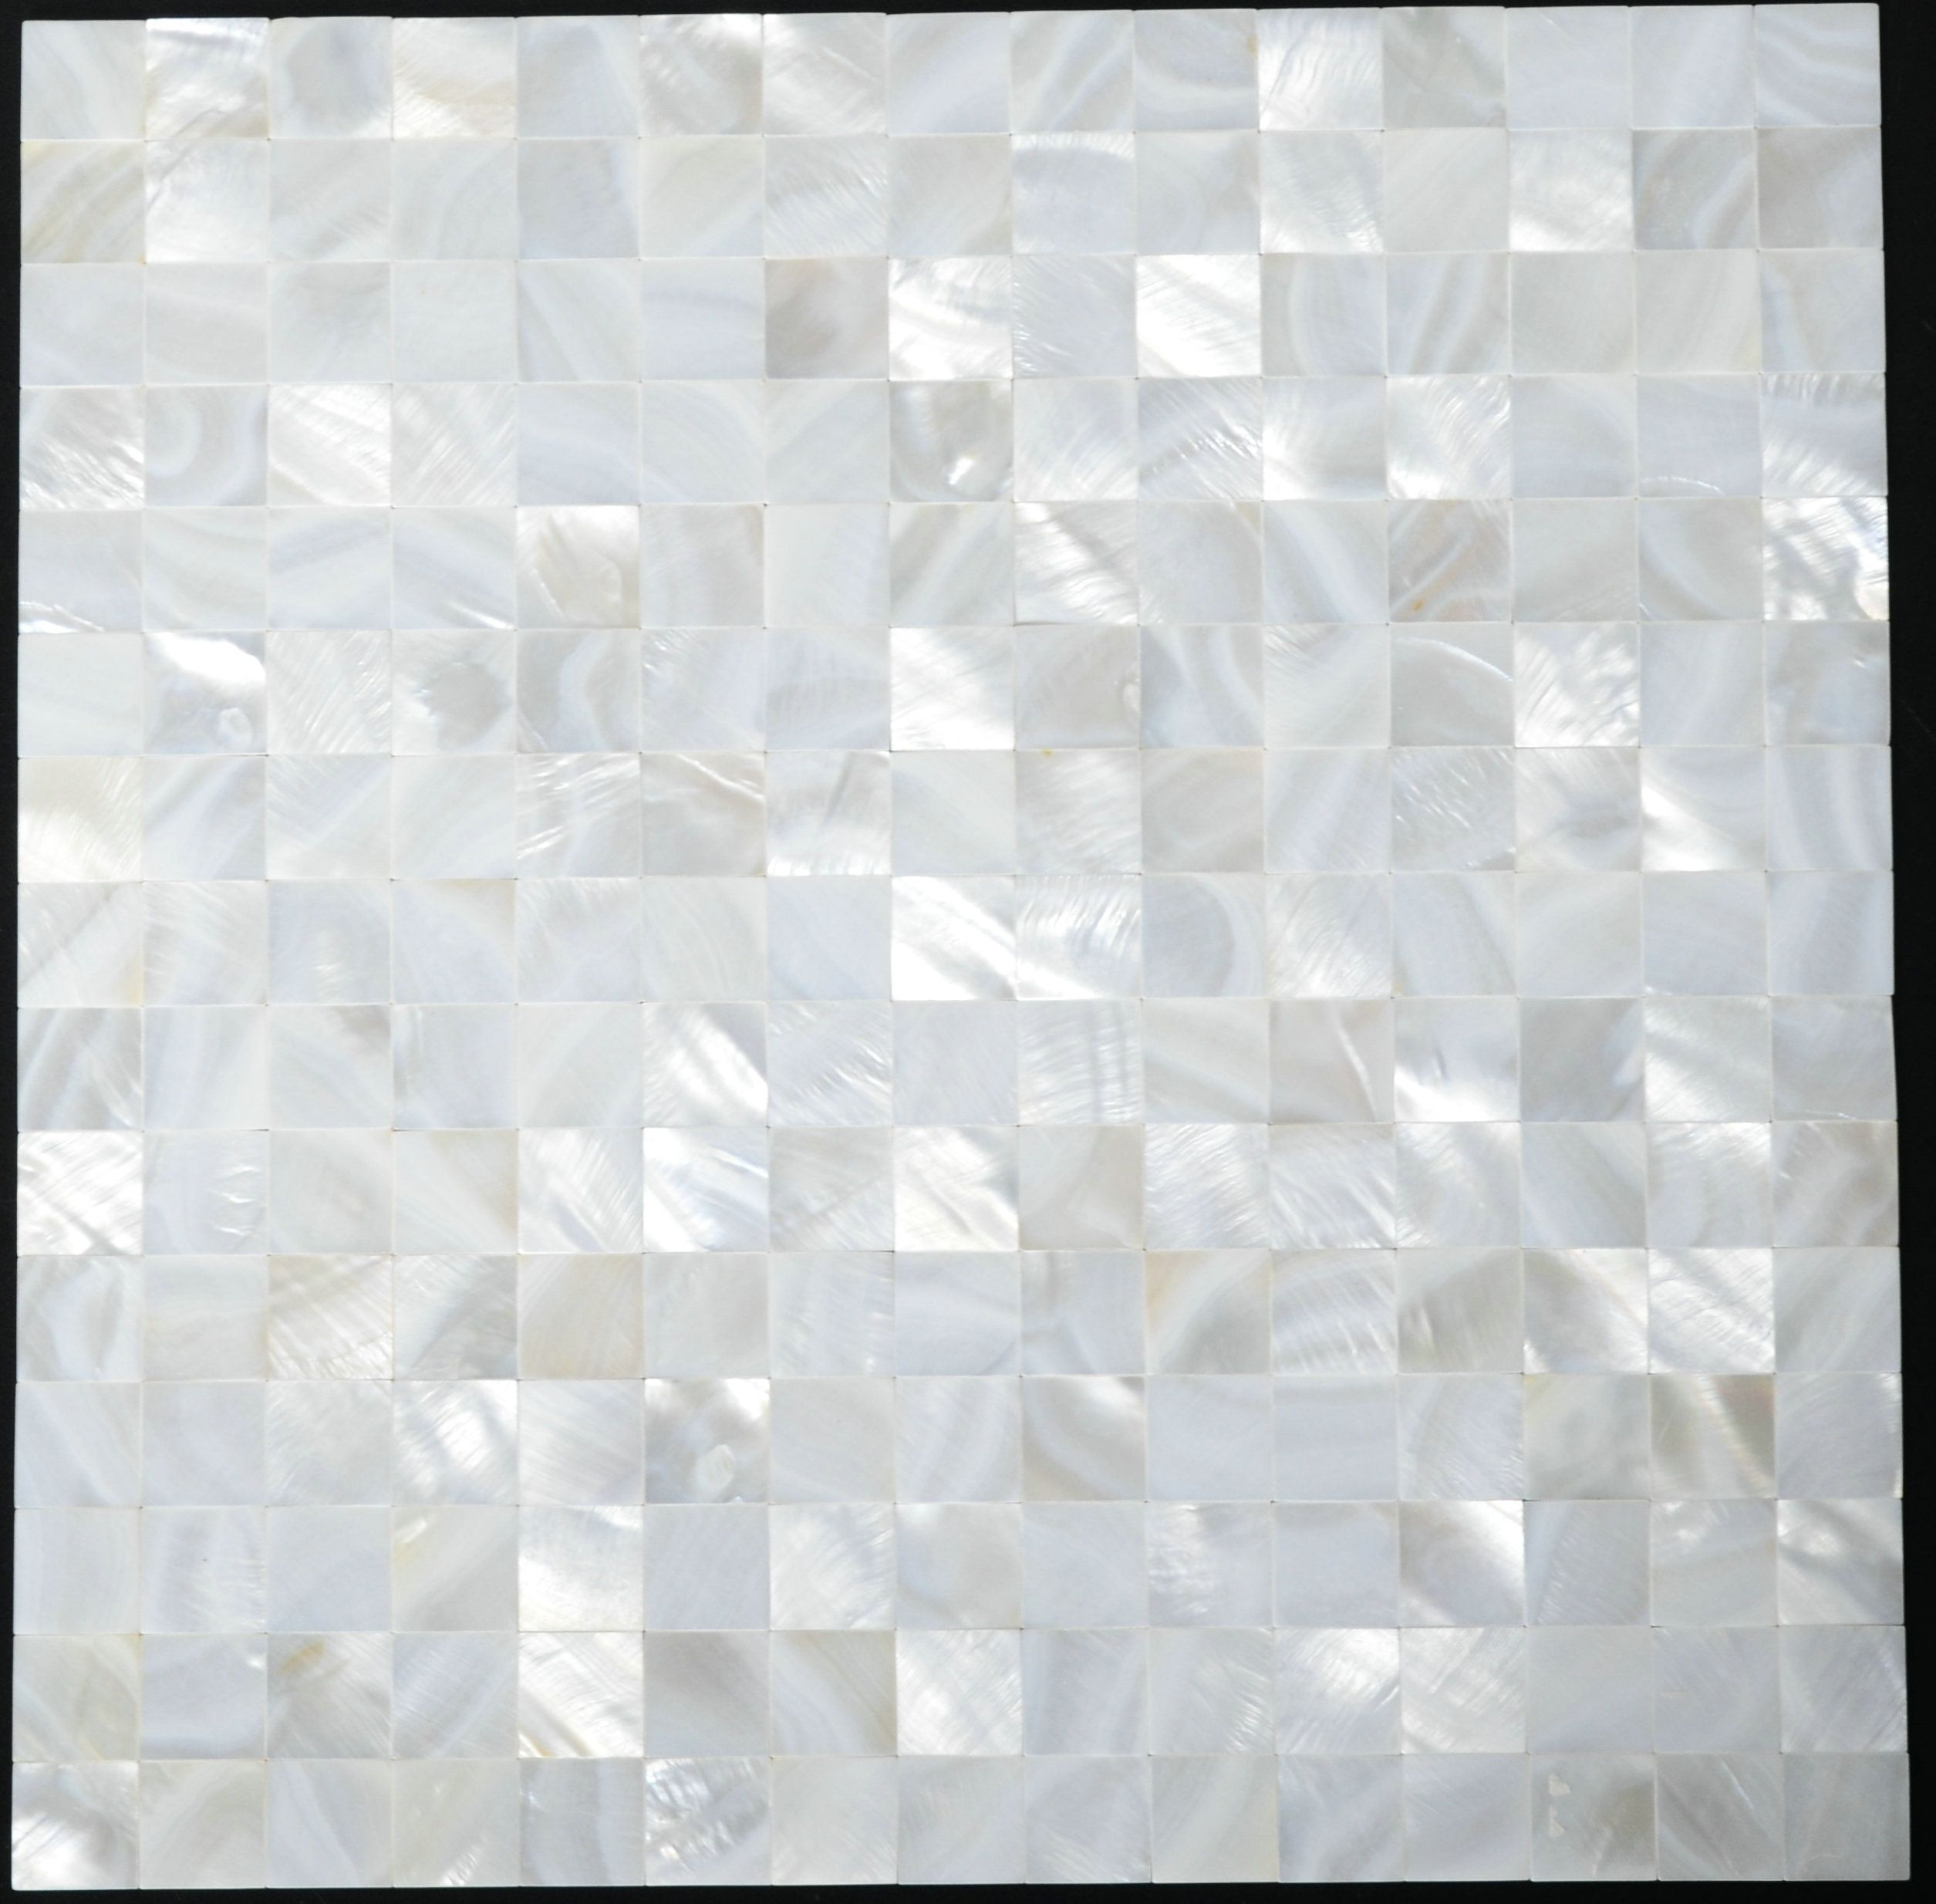 Mother of pearl sea shell mosaic kitchen backsplash tile mop006 online buy gorgous mother of pearl tiles at off for kitchen backsplash bathroom wall remolding mother of pearl tile it is called shell tile dailygadgetfo Image collections